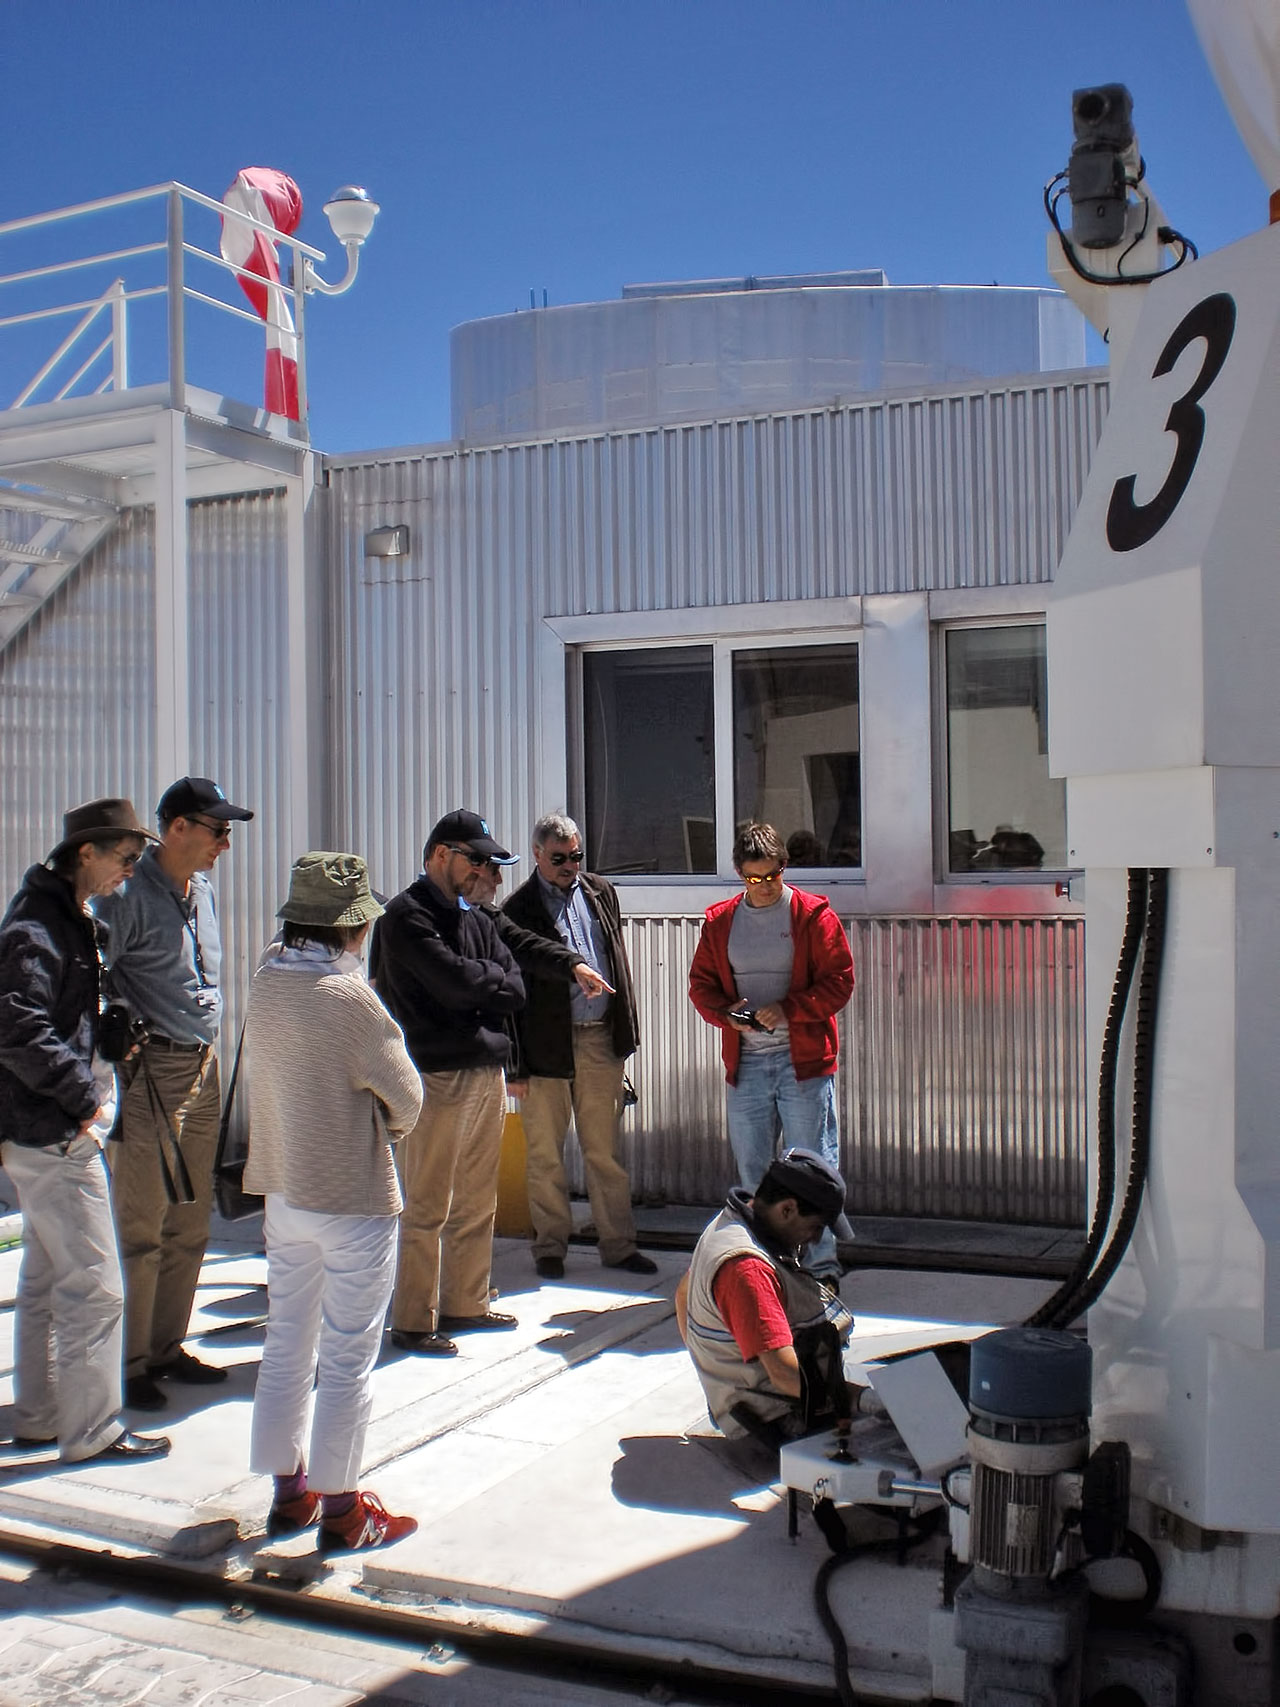 Delegation from the University of Liège at Paranal